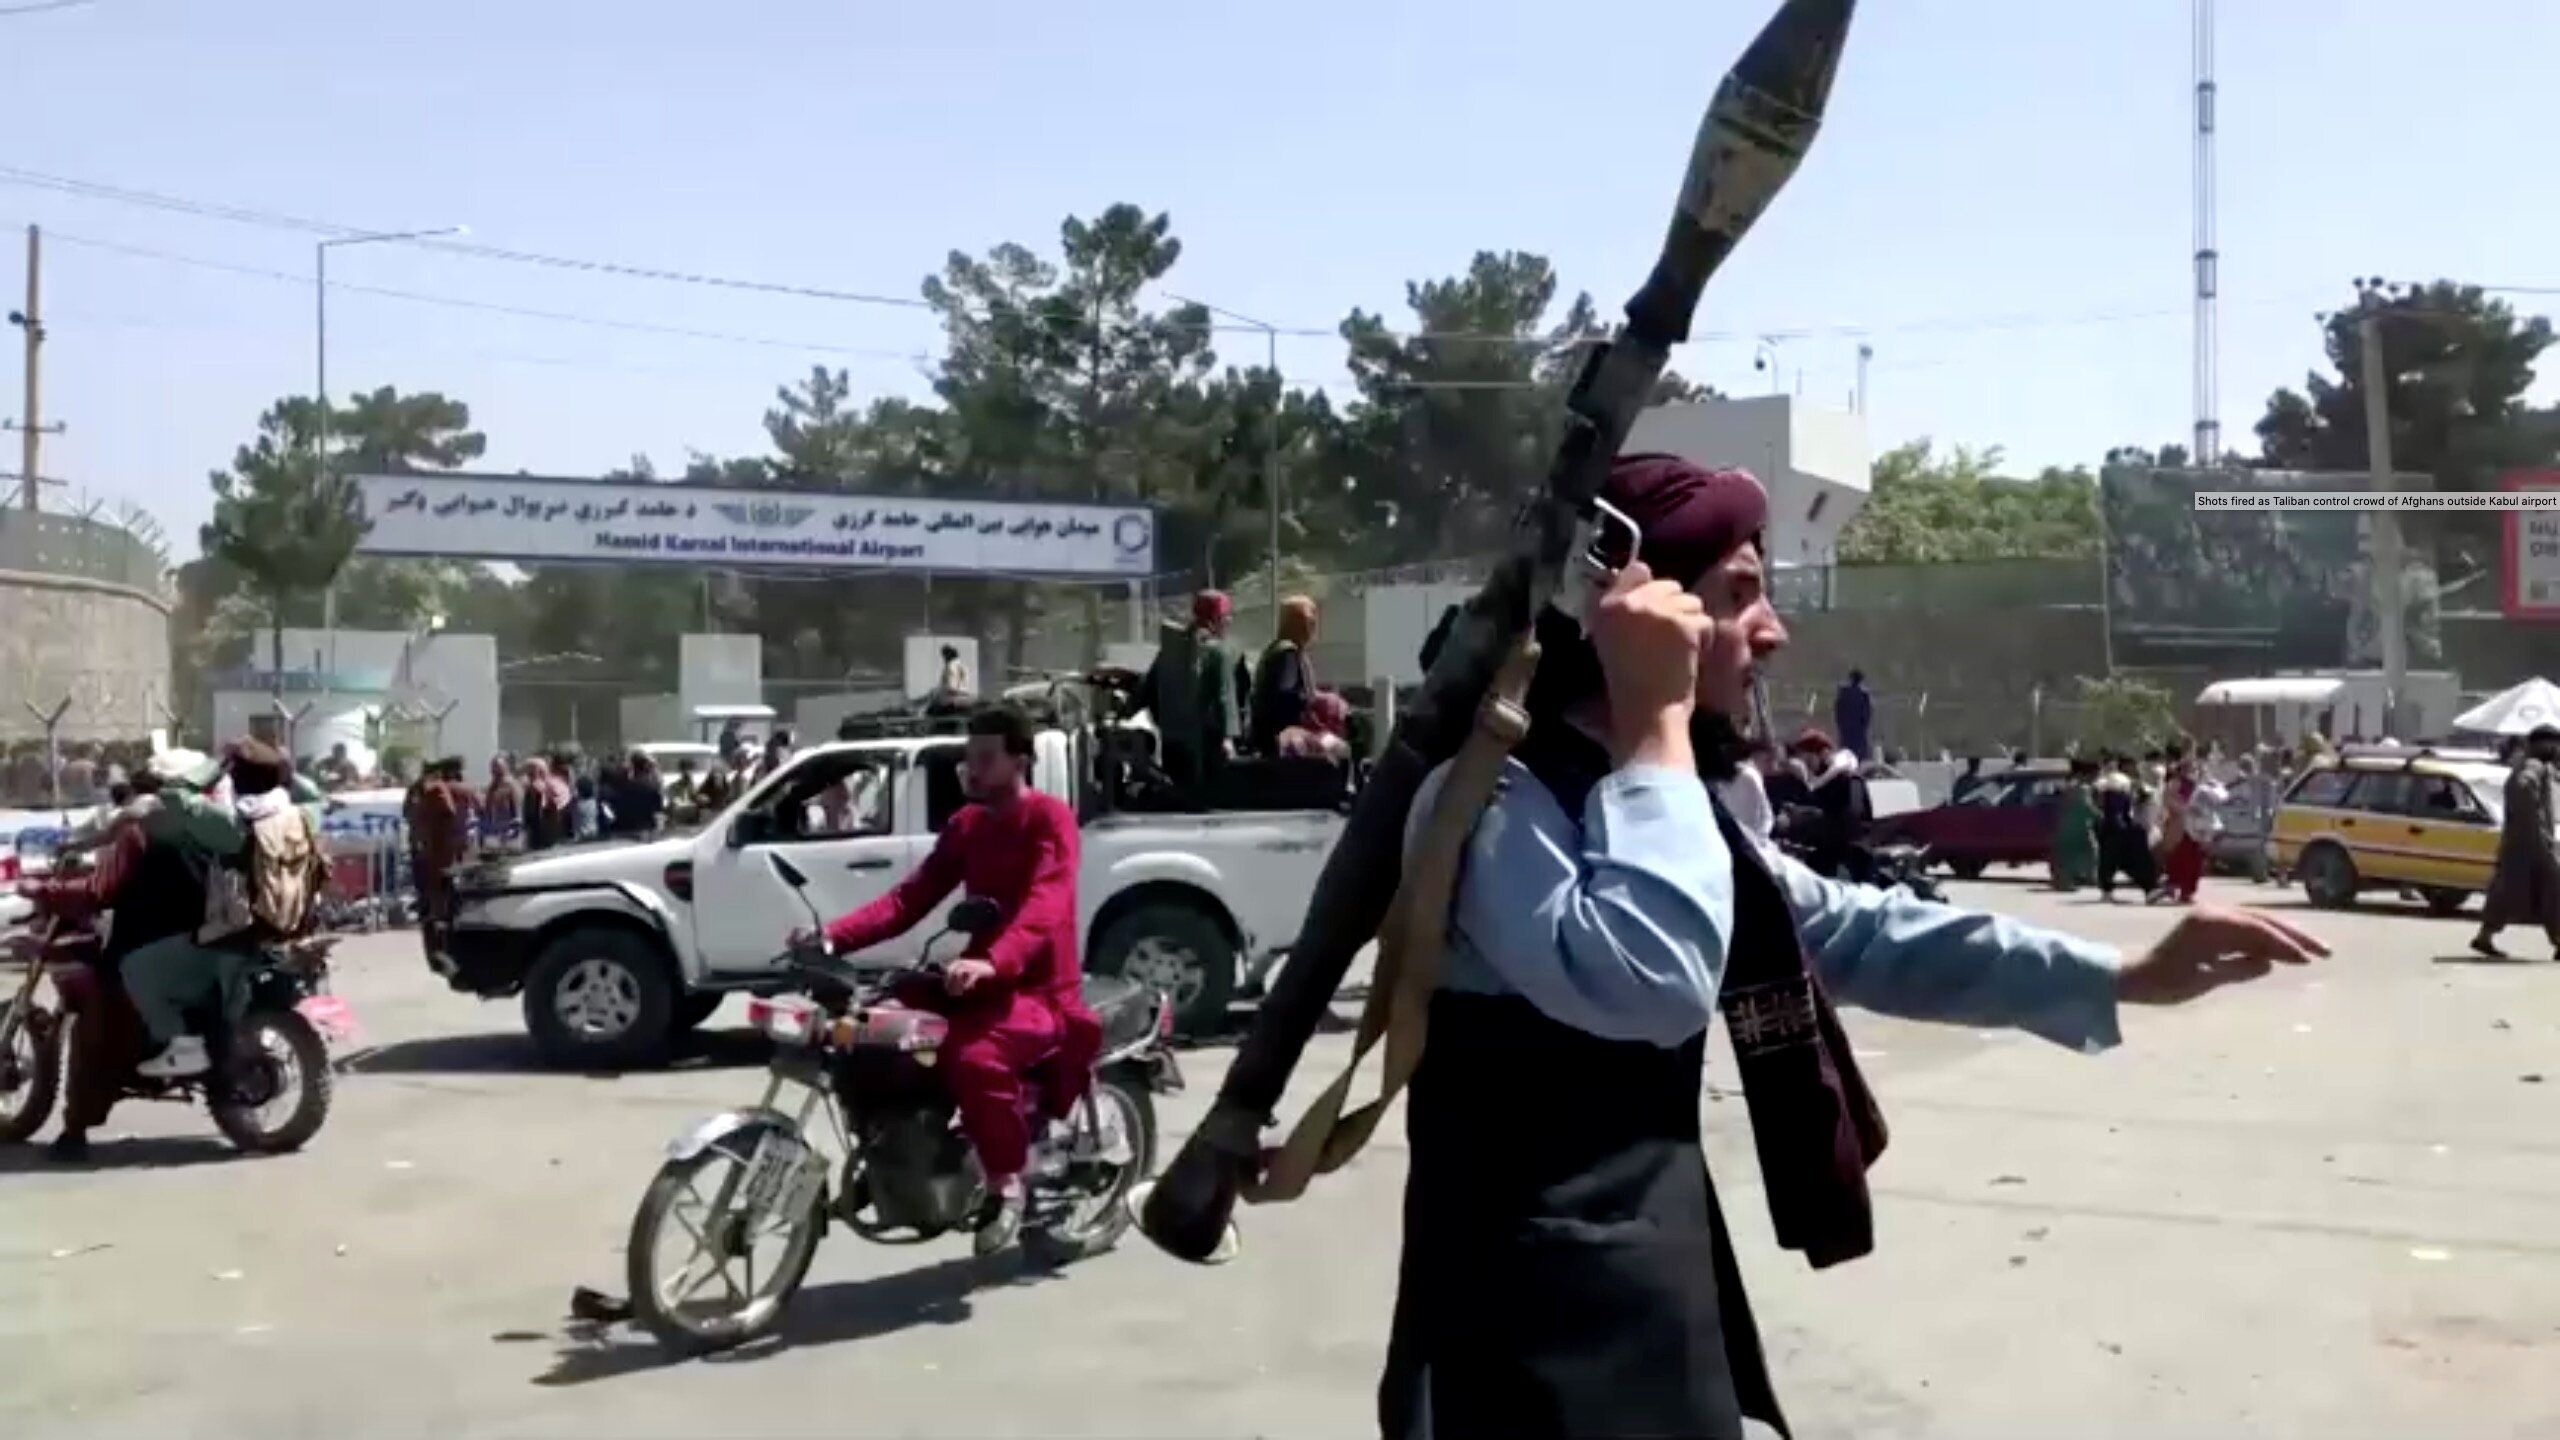 A Taliban fighter doing crowd-control outside Kabul airport.